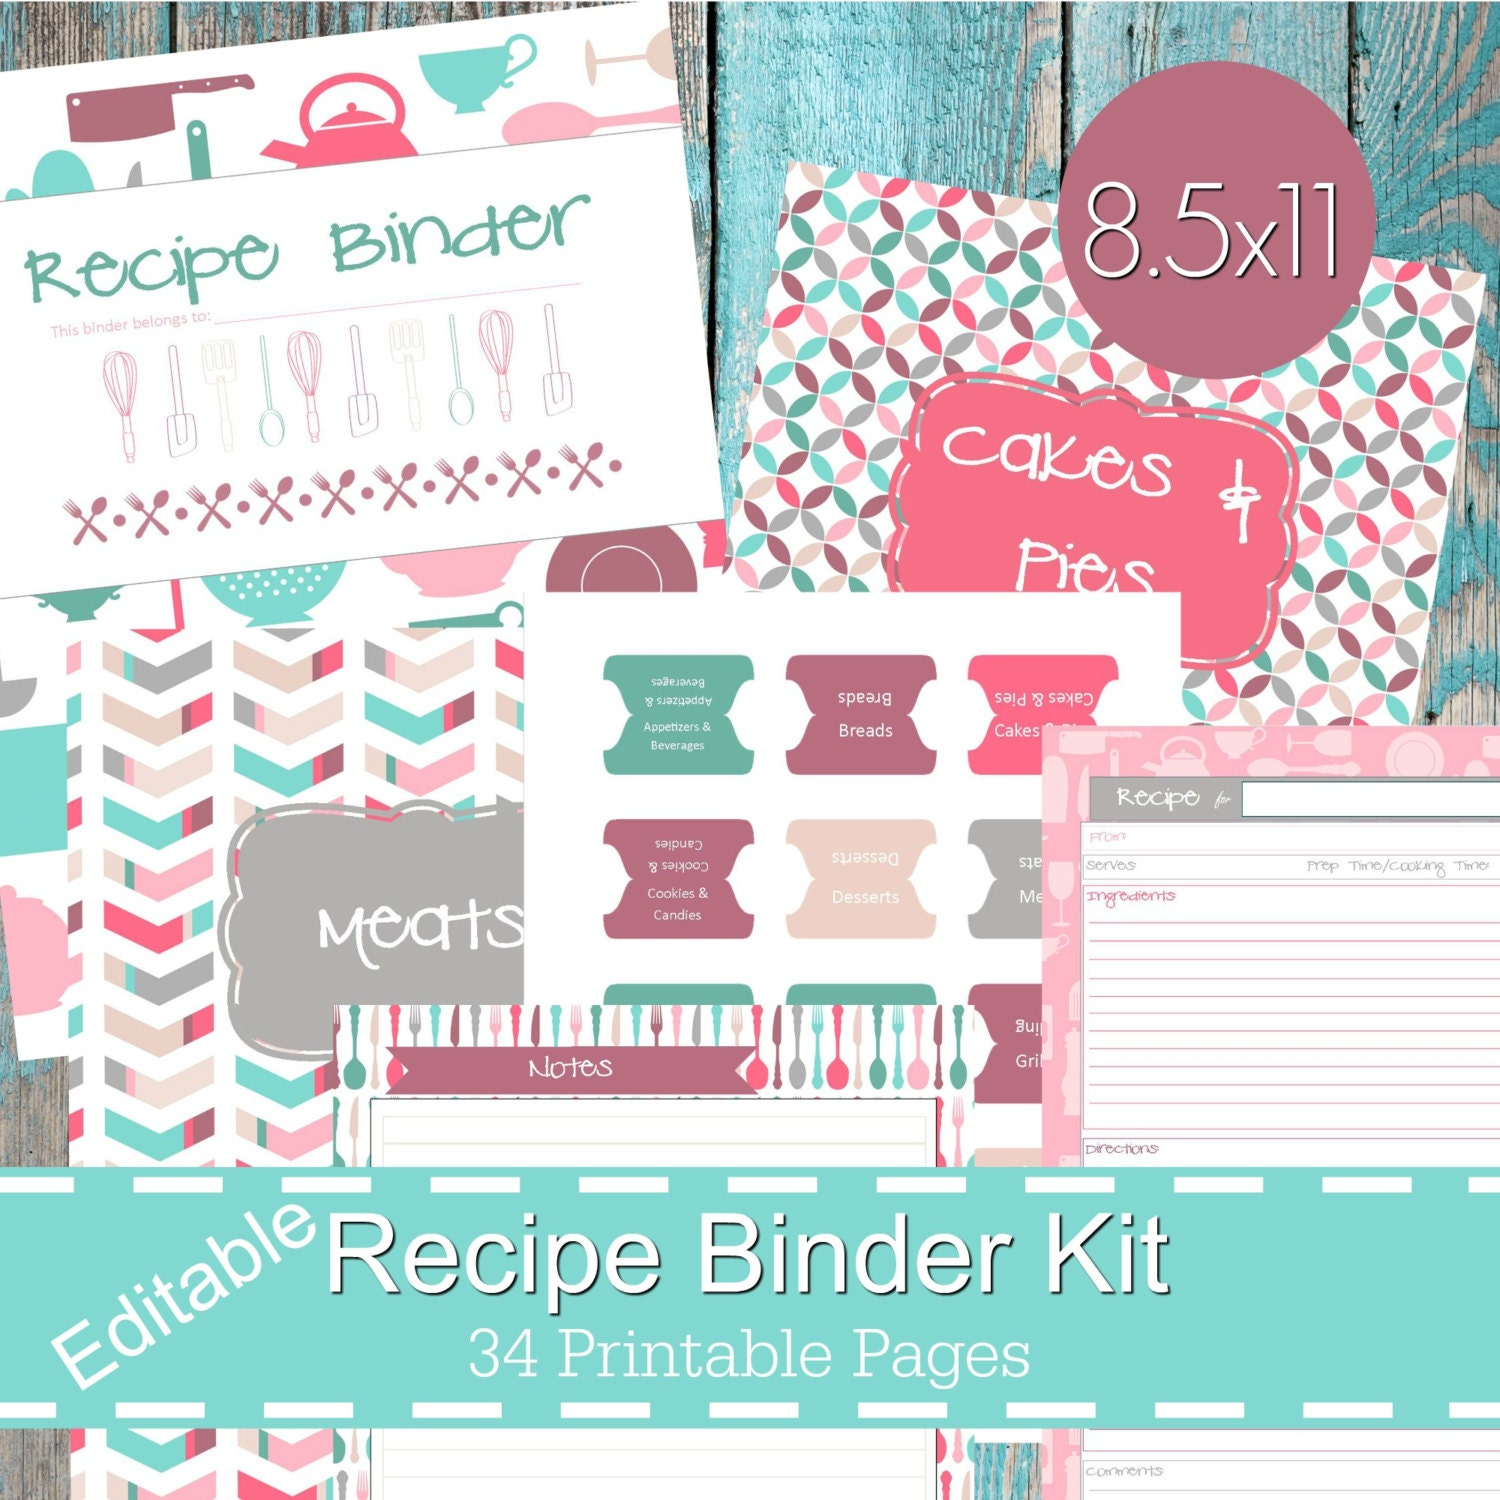 Critical image in free printable recipe binder kit